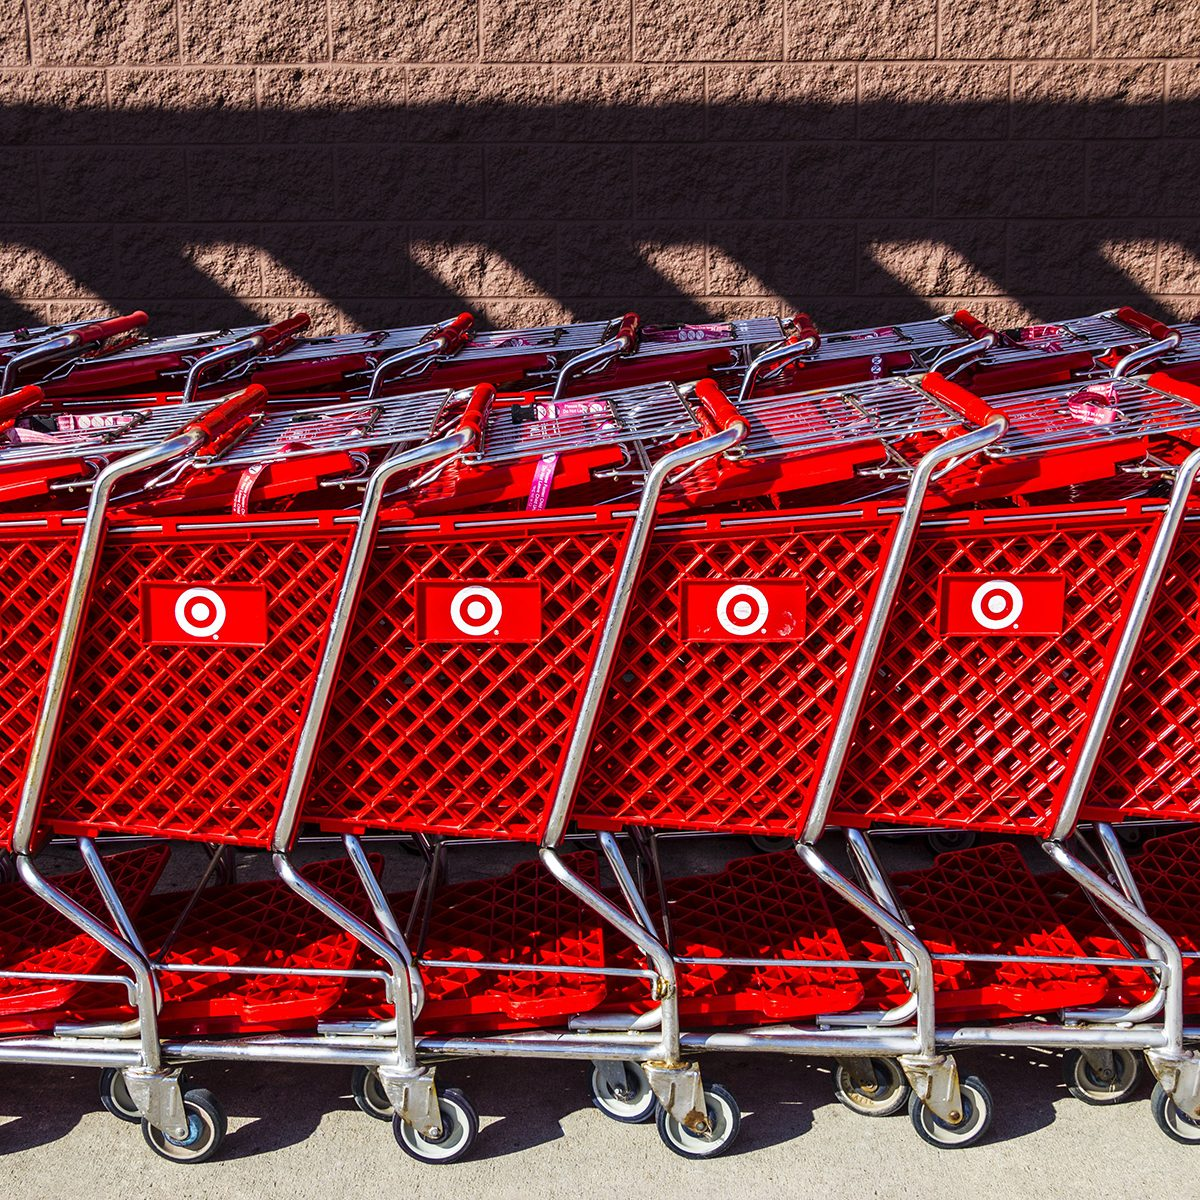 Deal of the Week: You Can Score a Bonus $100 Target Gift Card. Here's How.